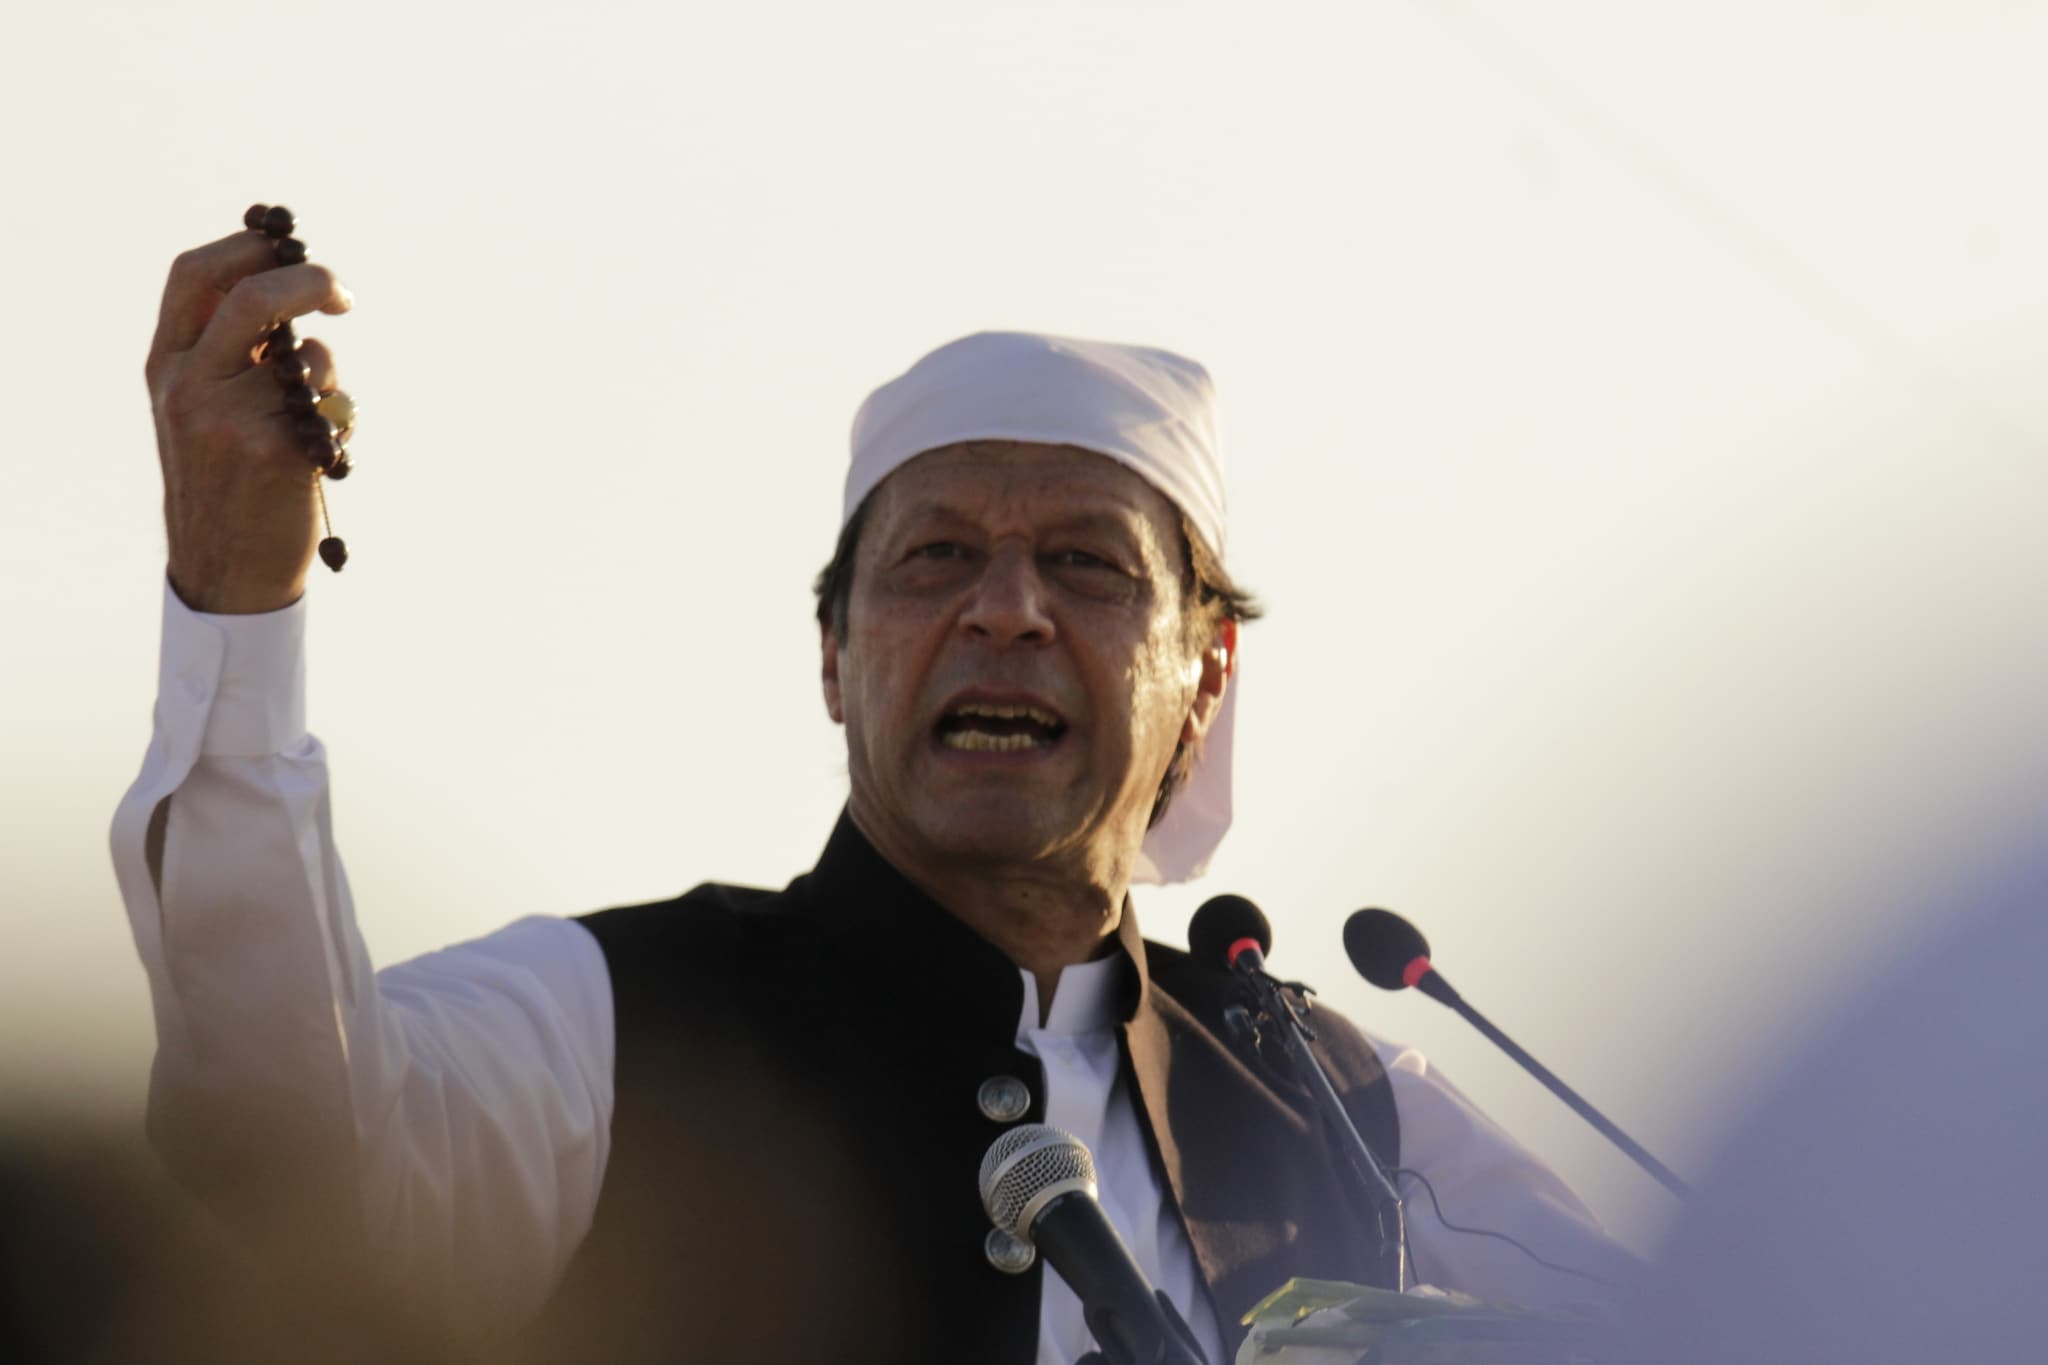 Pakistan Prime Minister Imran Khan during his speech at the inauguration.